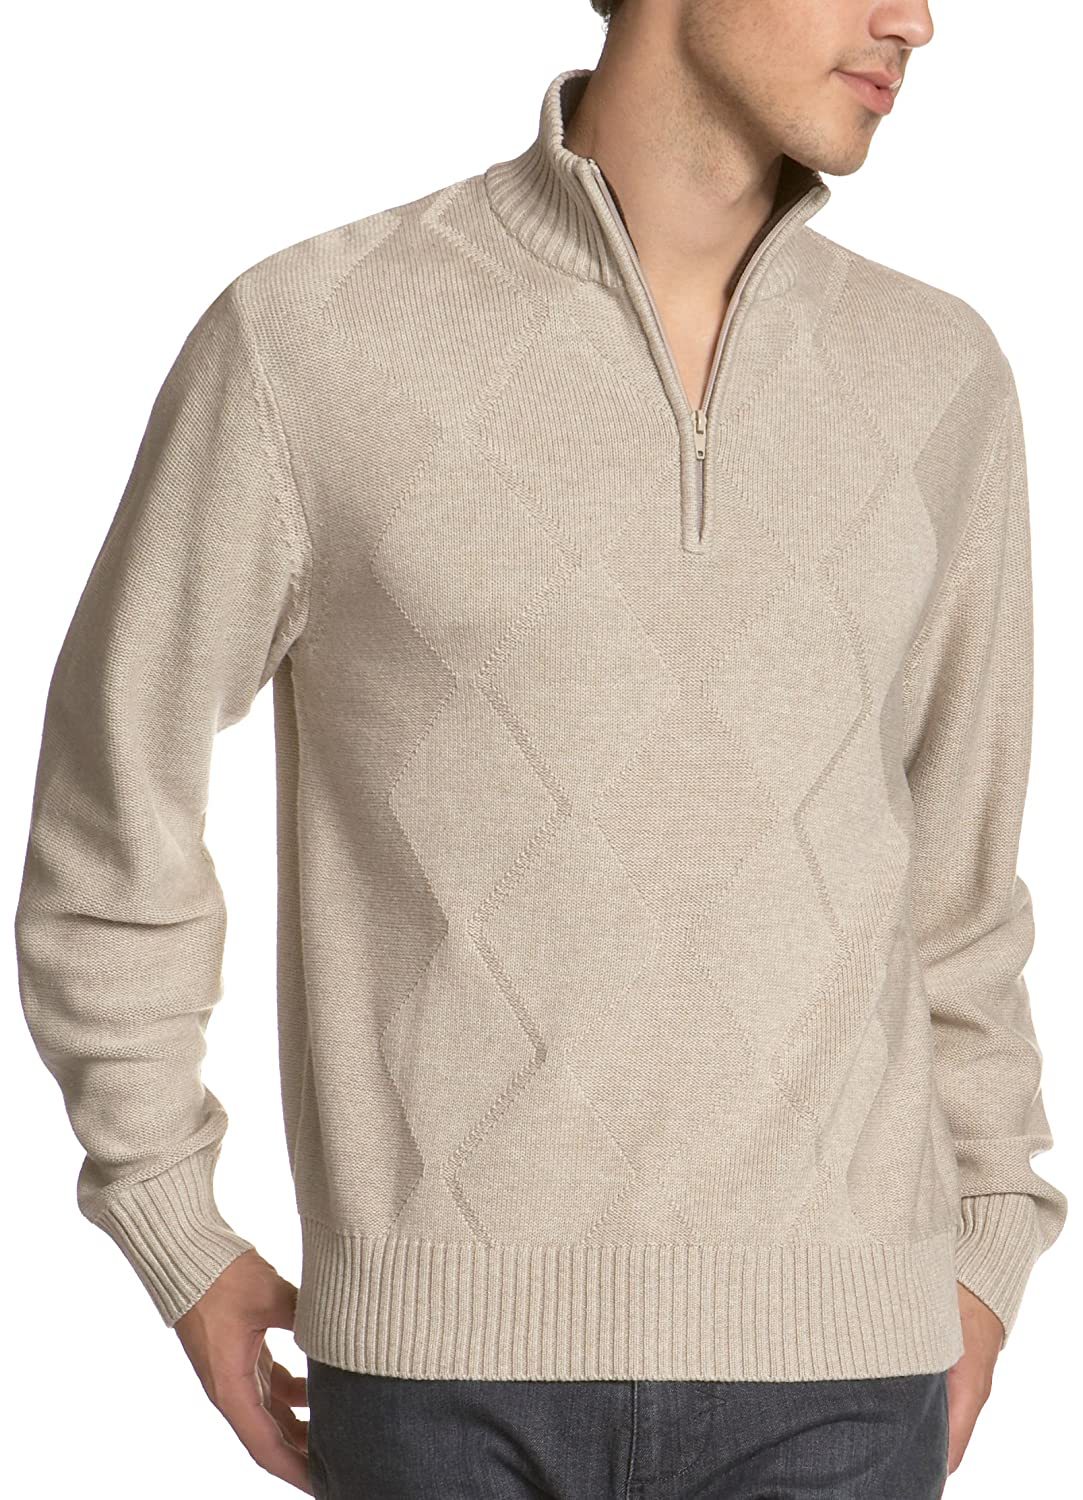 Alex Stevens Men's Diamond 1/2 Zip Sweater,Heather Mushroom,X-Large